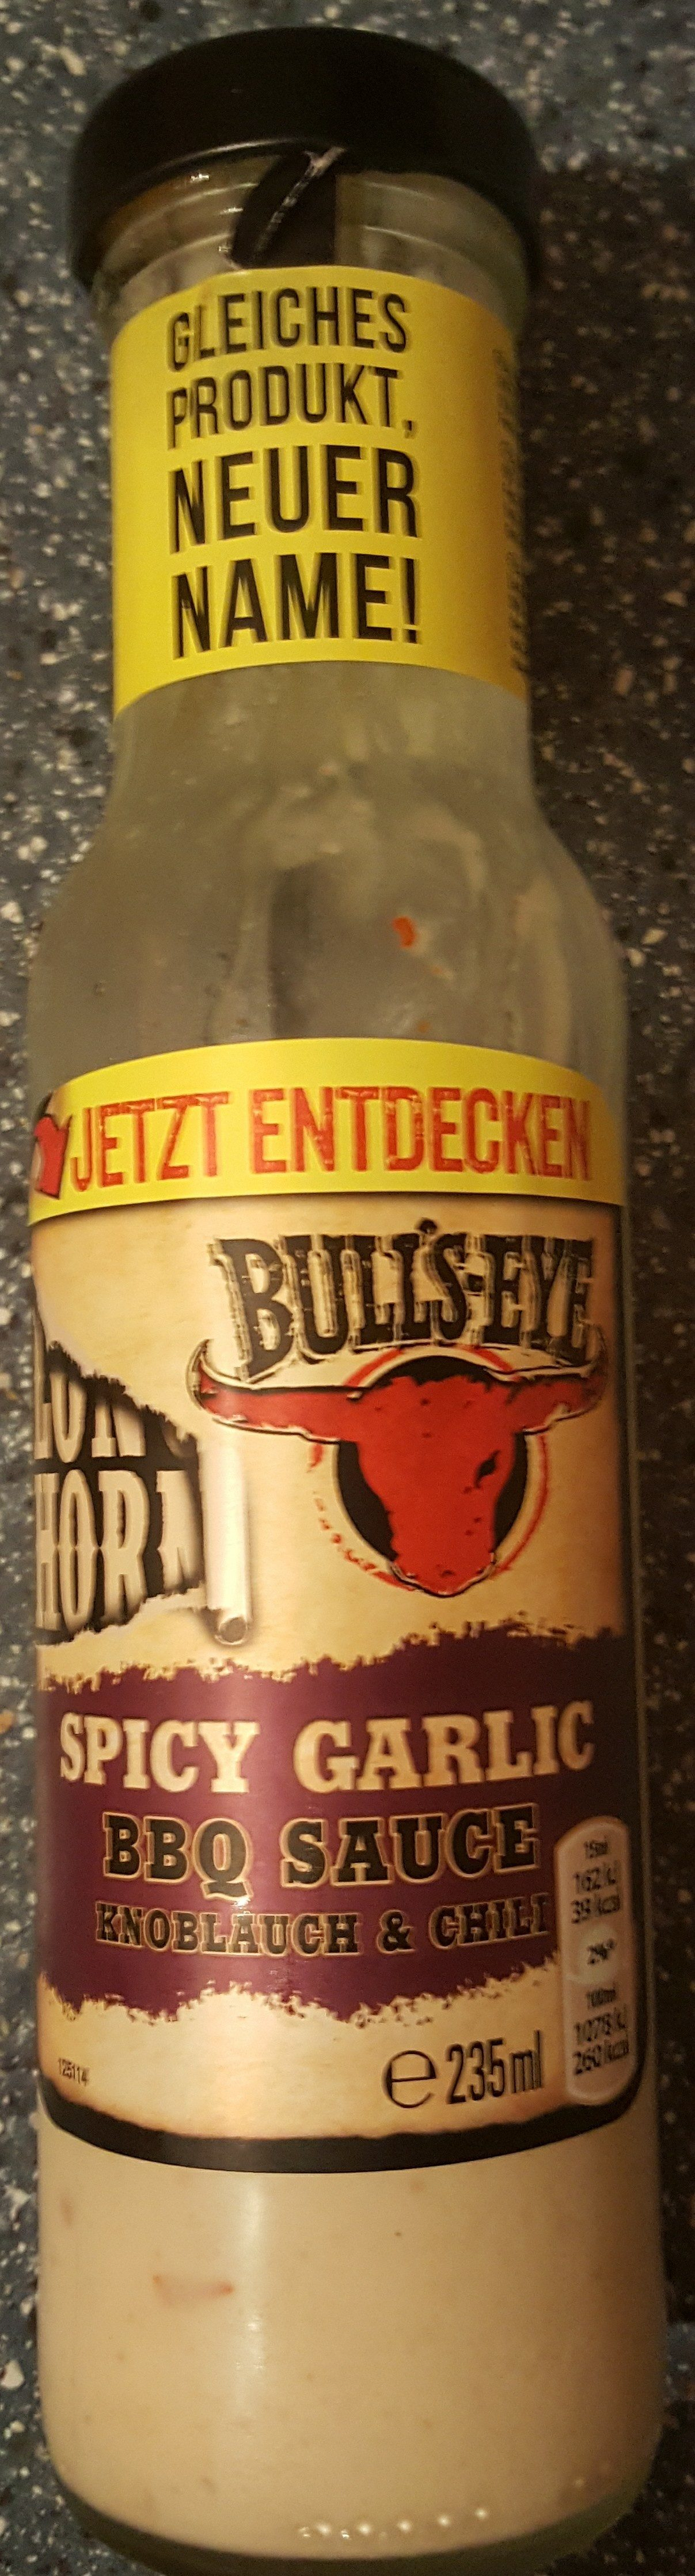 Bull´s eye BBQ Sauce Spicy Garlic - Product